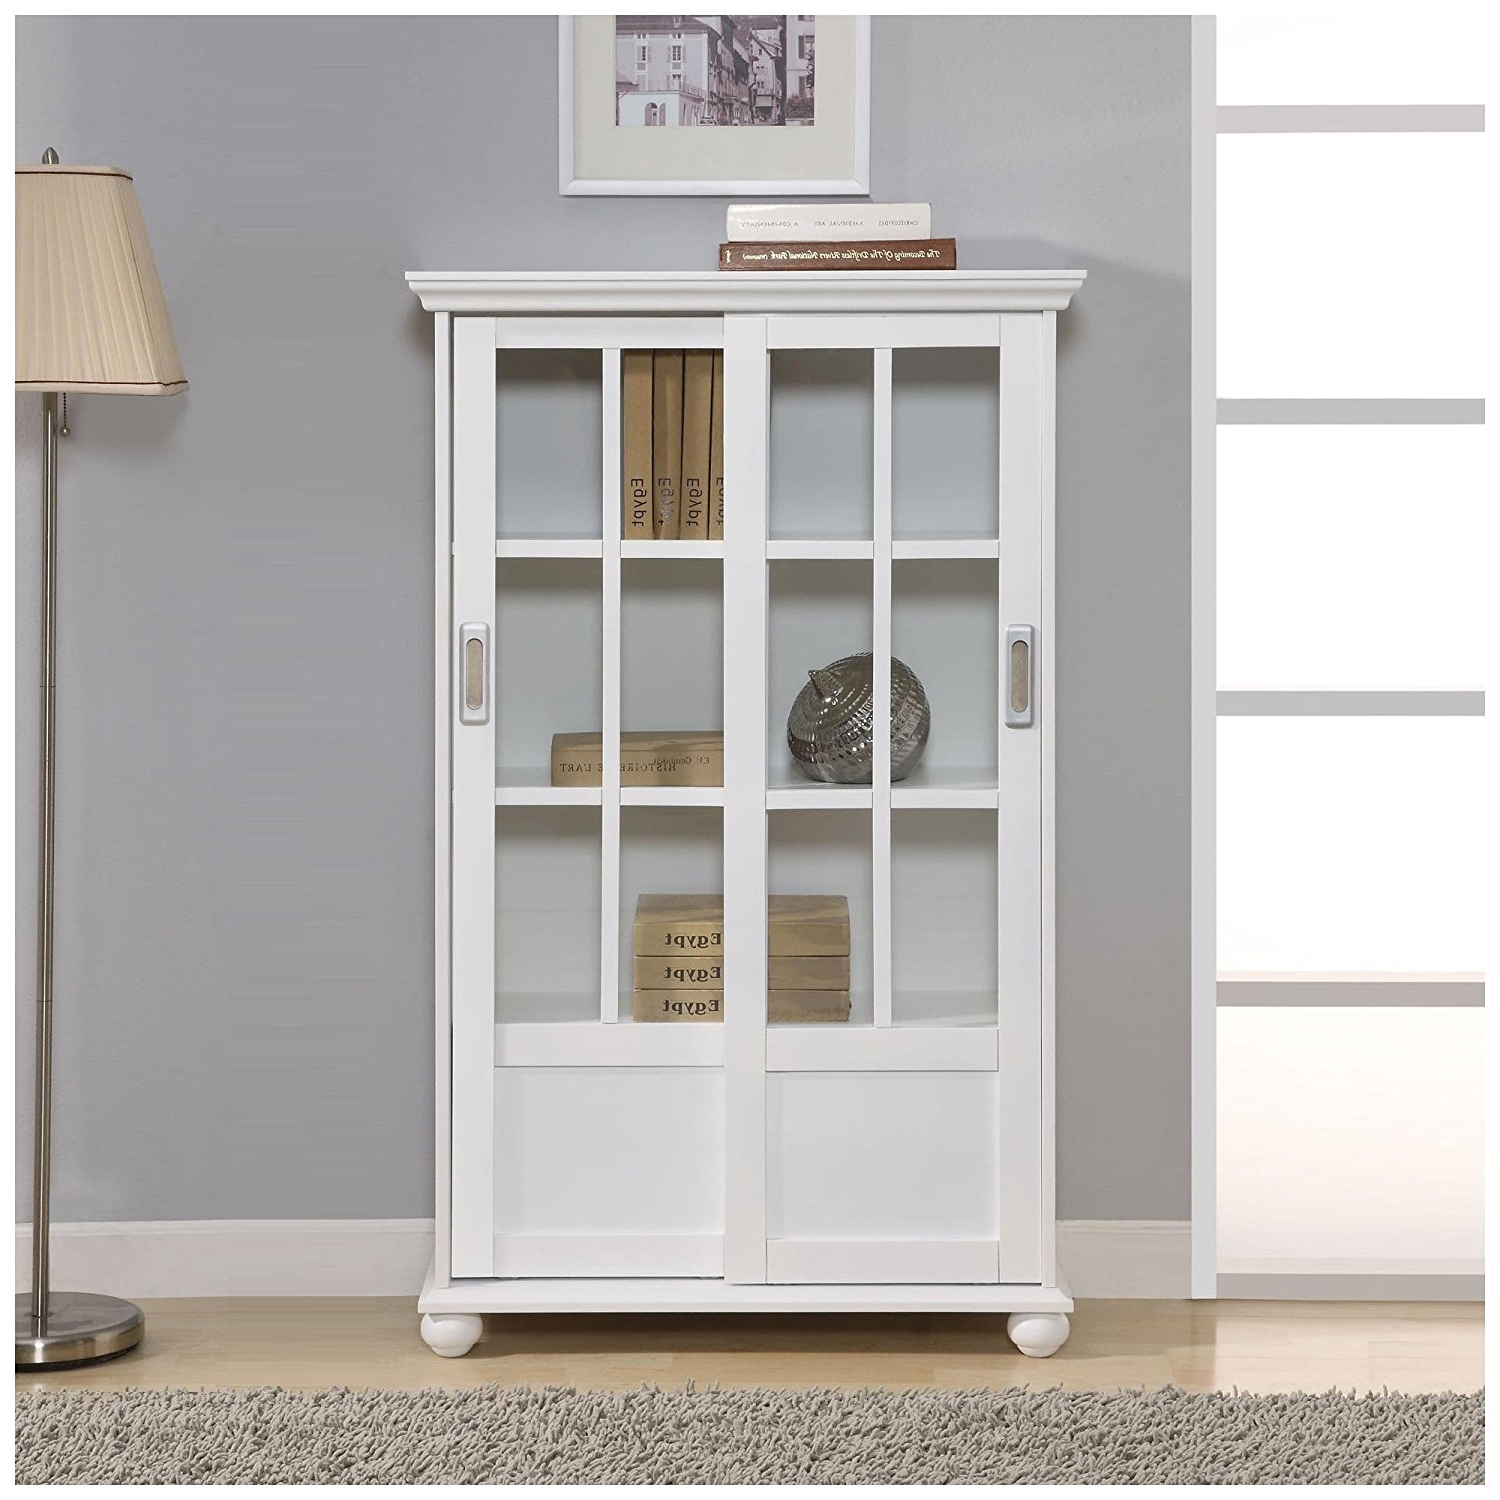 Popular Door Bookcases With Regard To Amazon: Altra 9448096 Bookcase With Sliding Glass Doors, White (View 12 of 15)